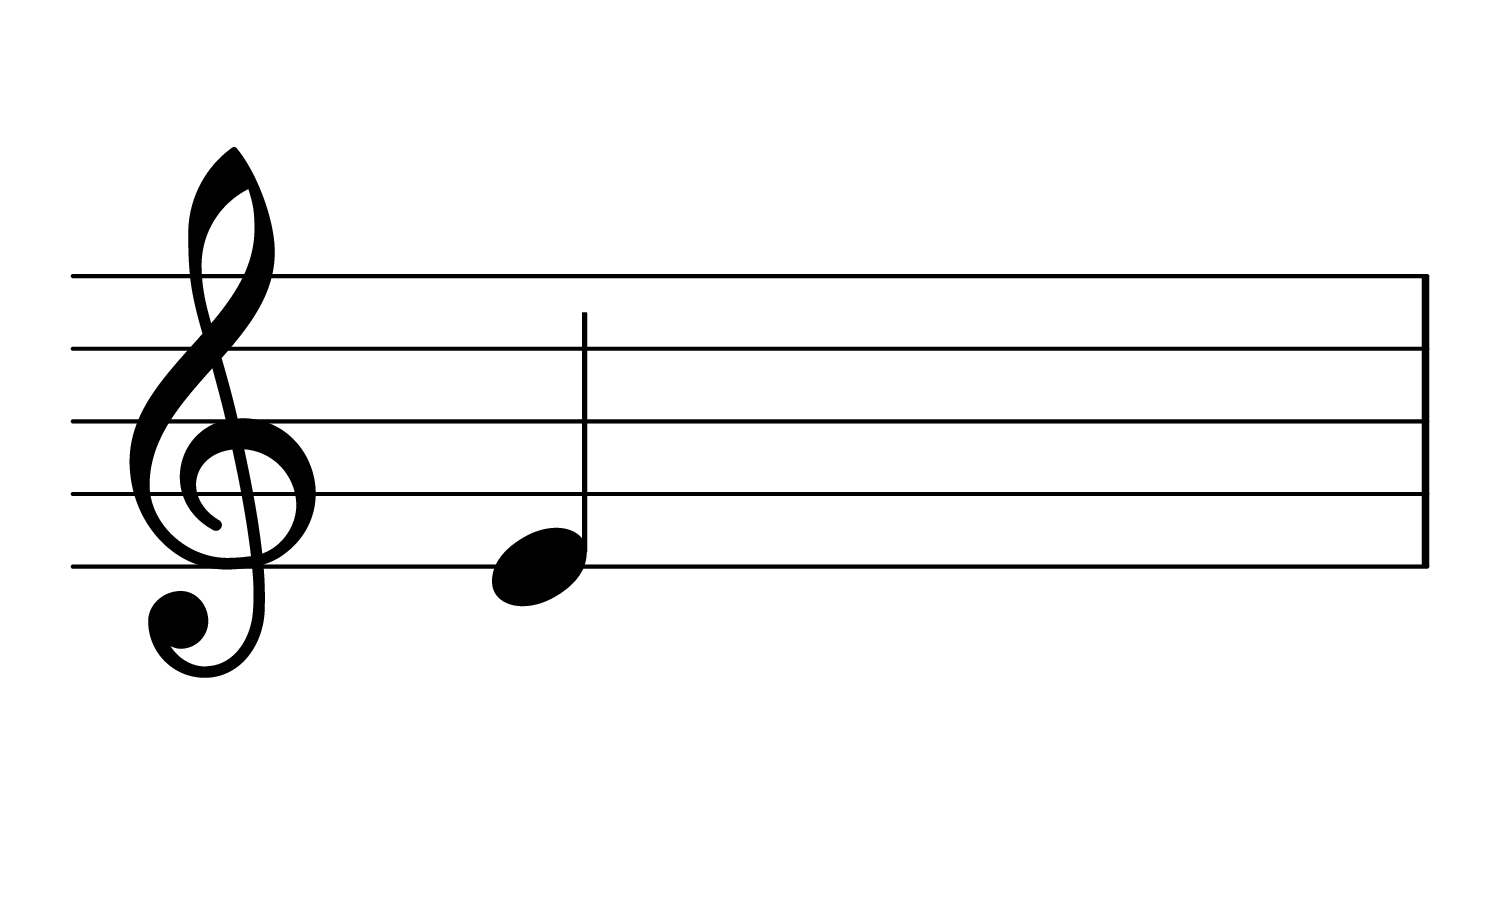 Image of the note E3 on the treble clef.